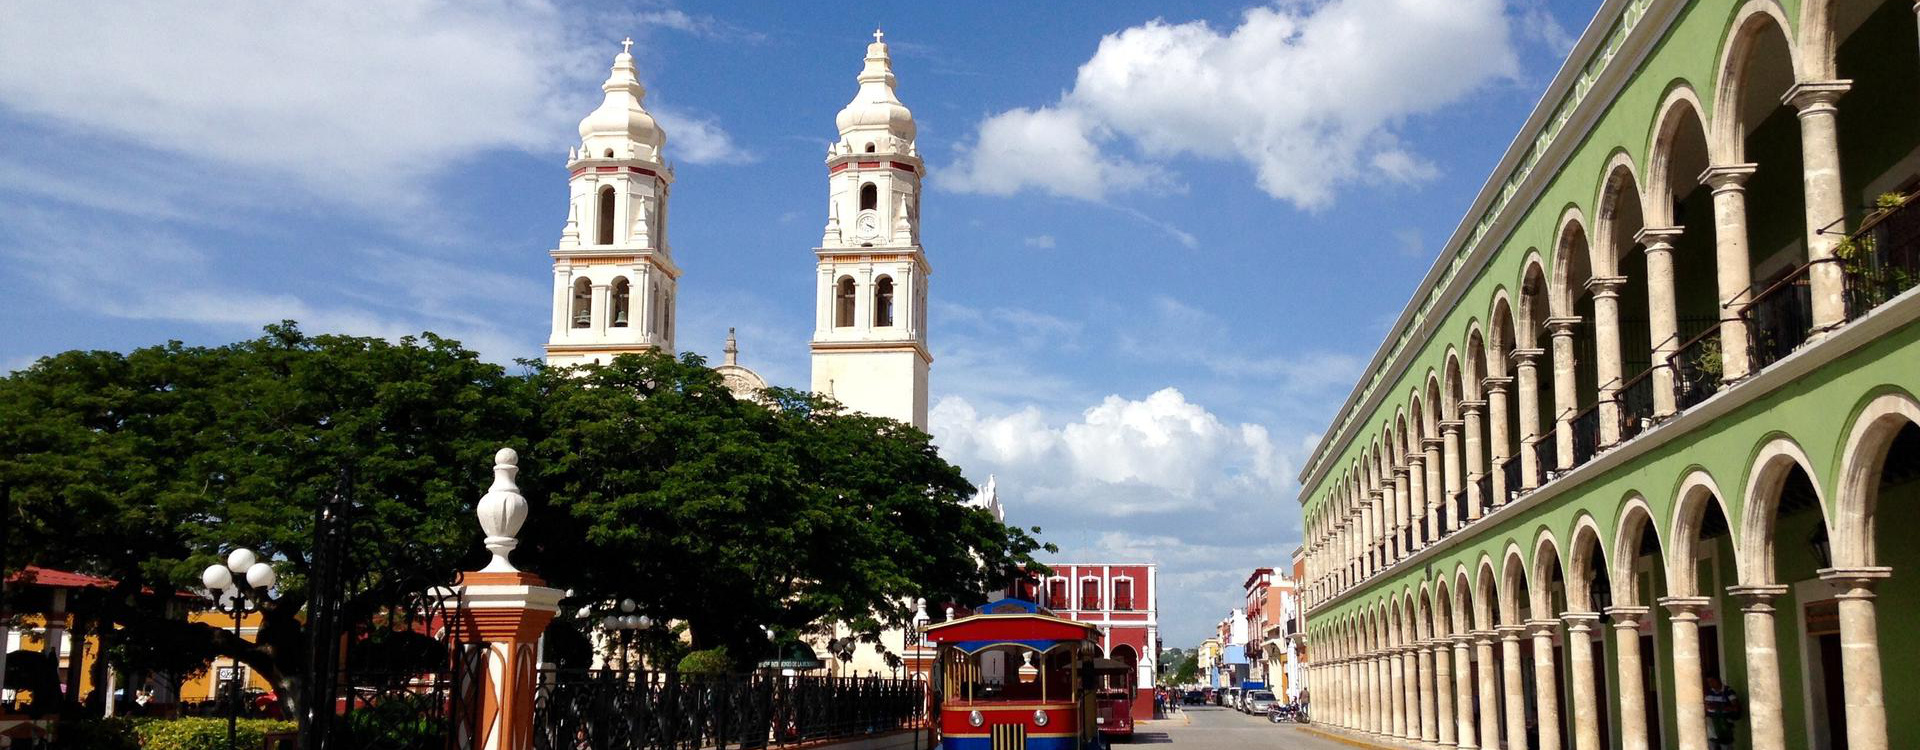 mexique-campeche